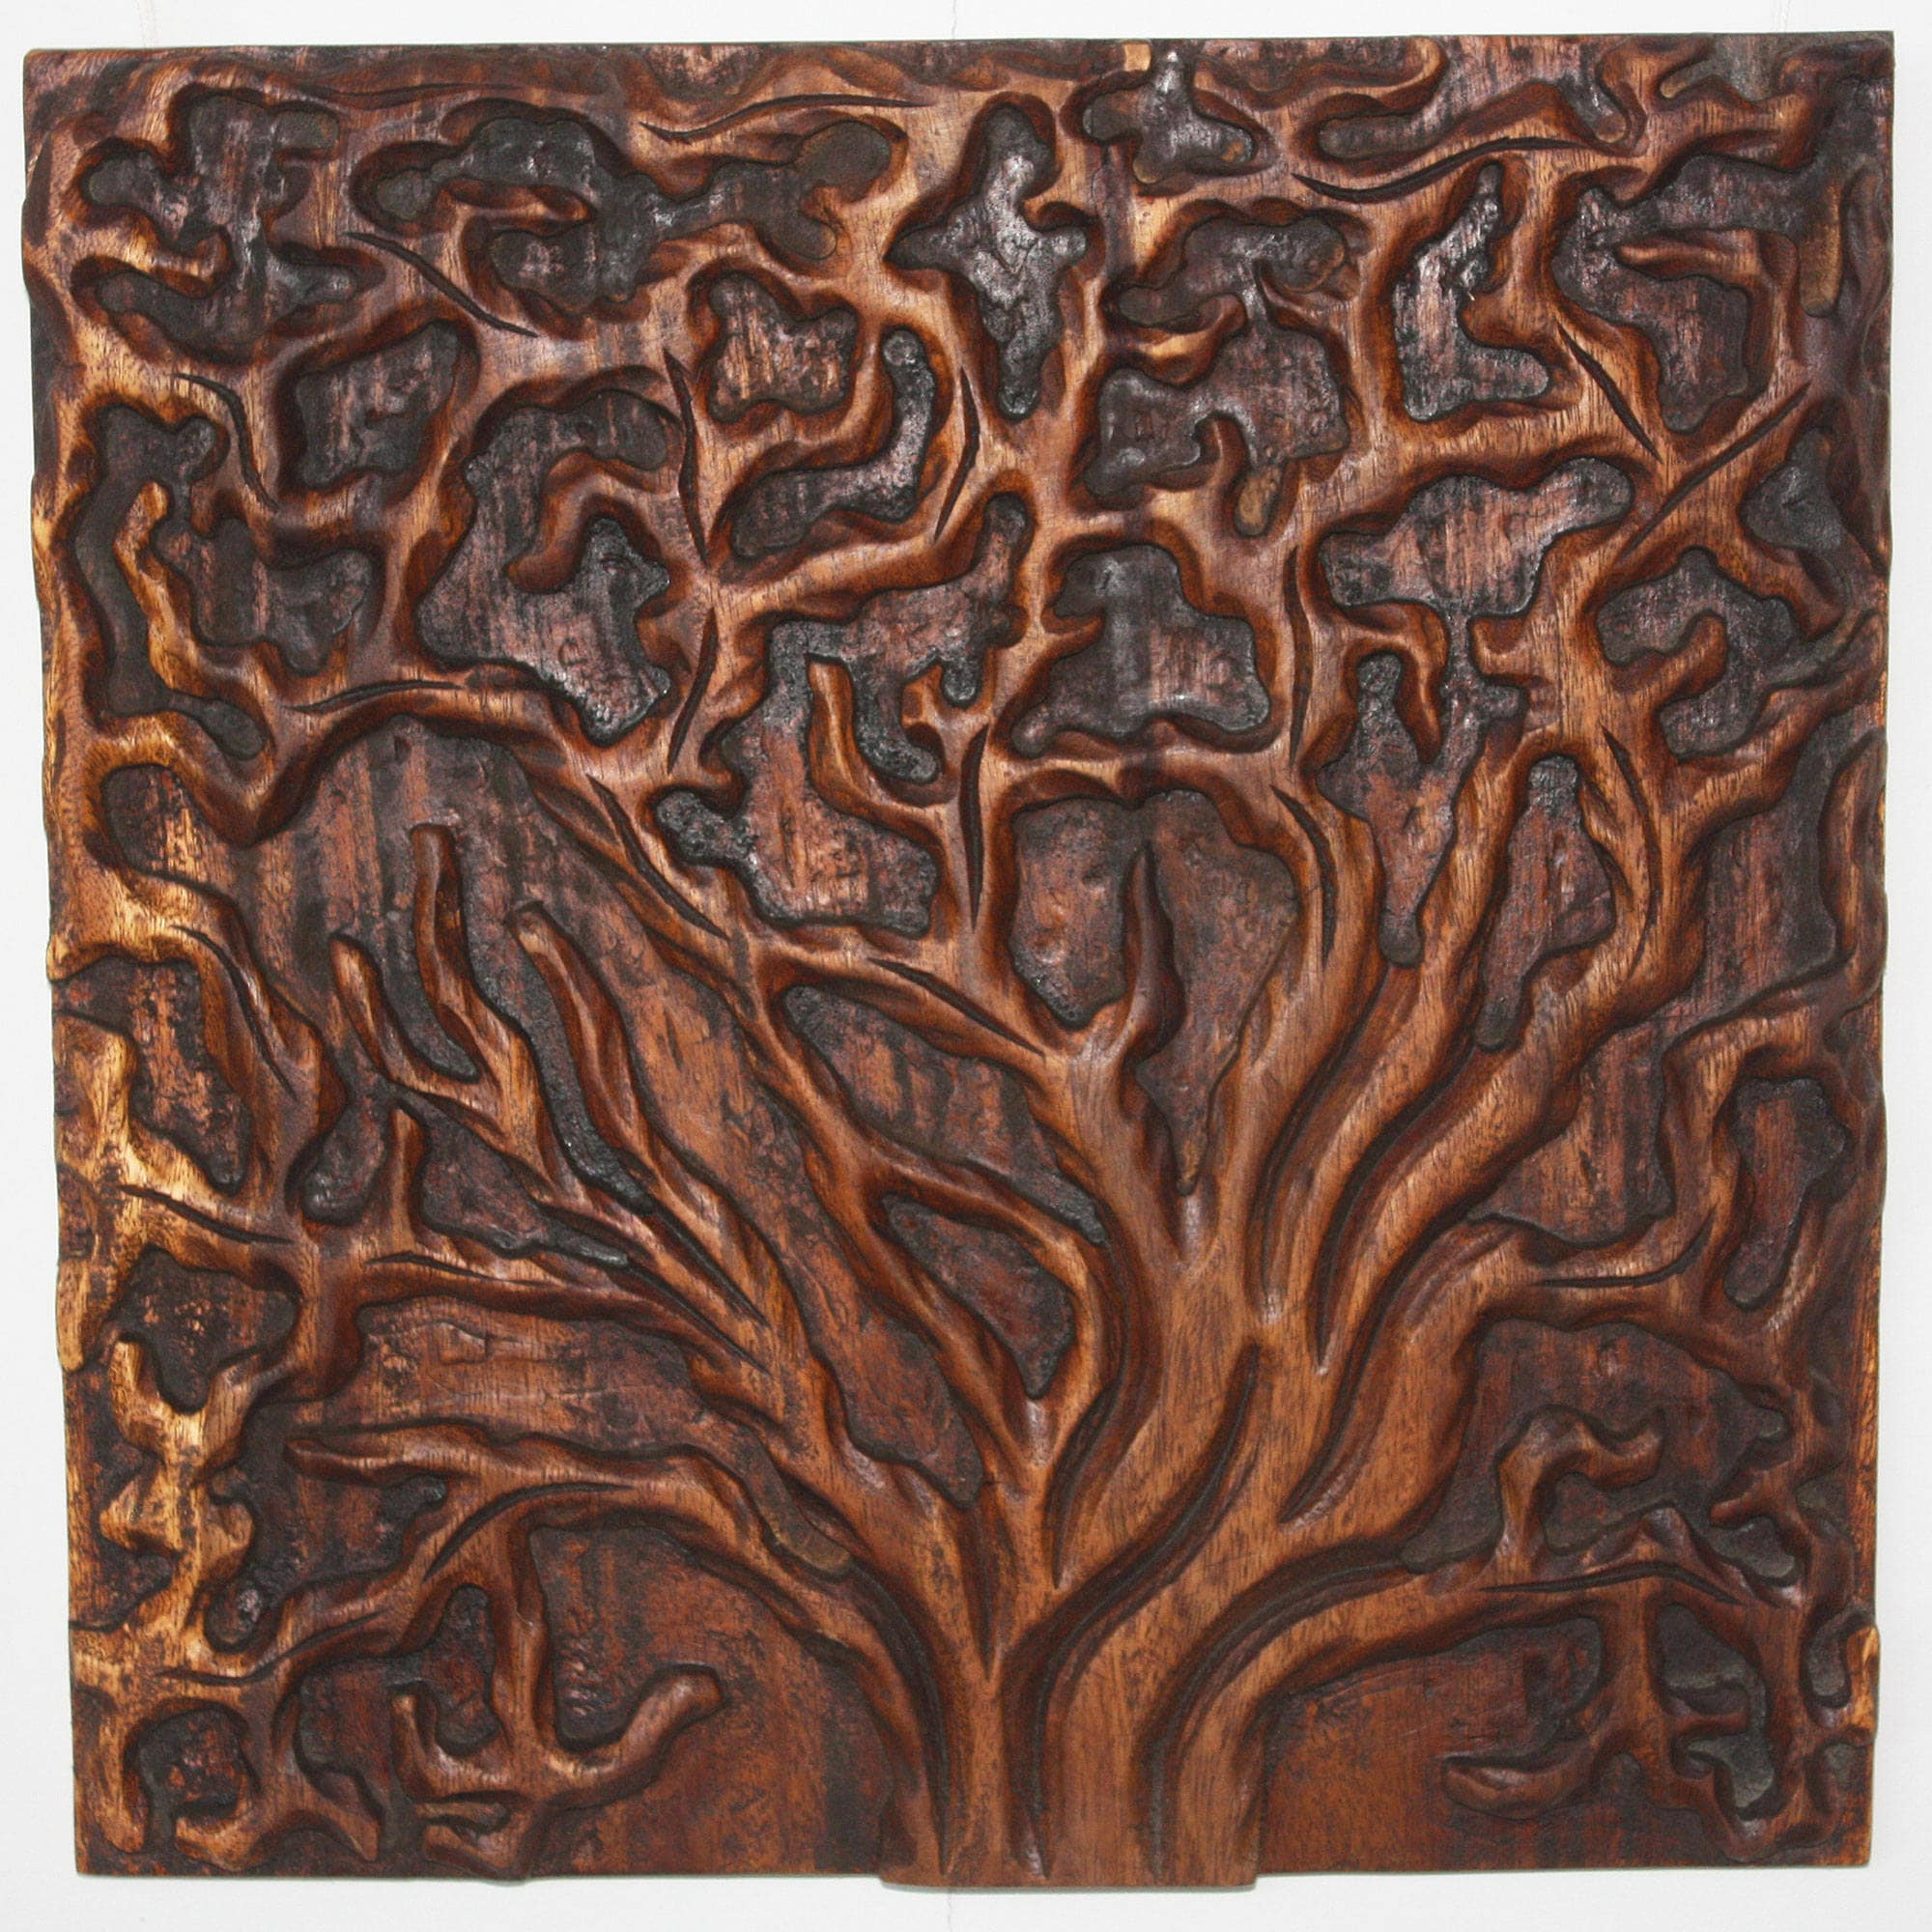 Haussmann Handmade 'Tree Life' 18 x 18-inch 3-piece Natural Golden Oak Oil Solid Wall Panels (Thailand)